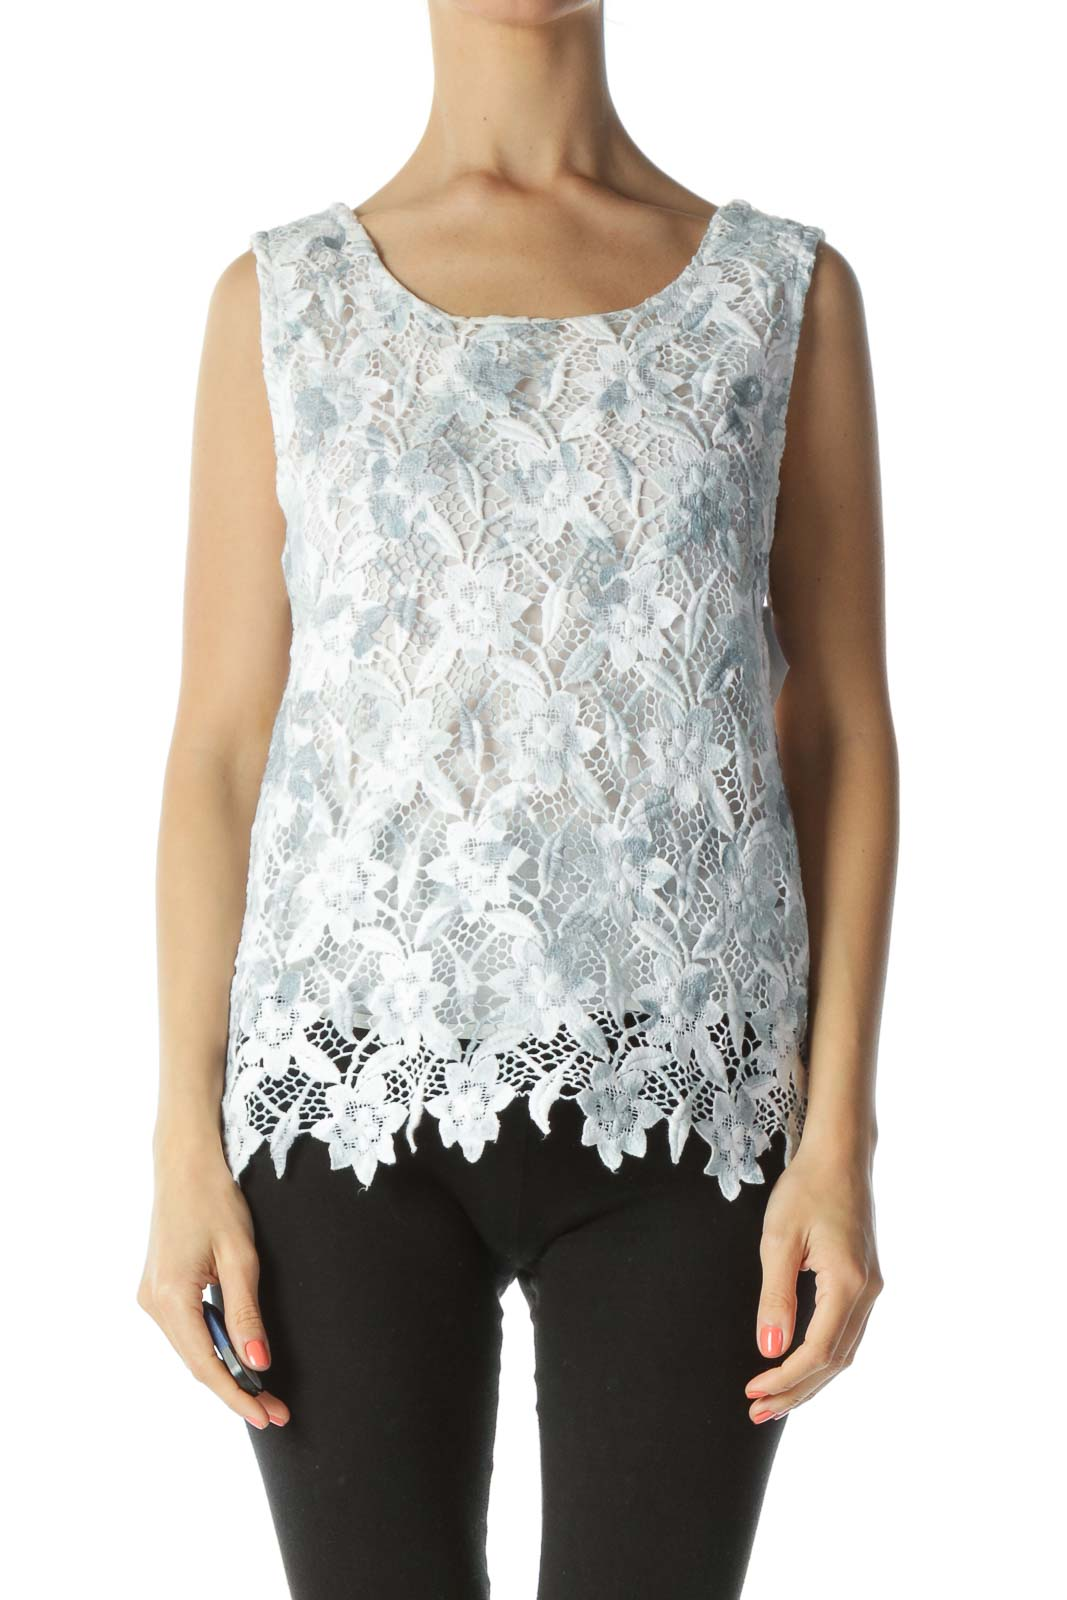 Blue & White Lace Floral Sleeveless Lined Blouse